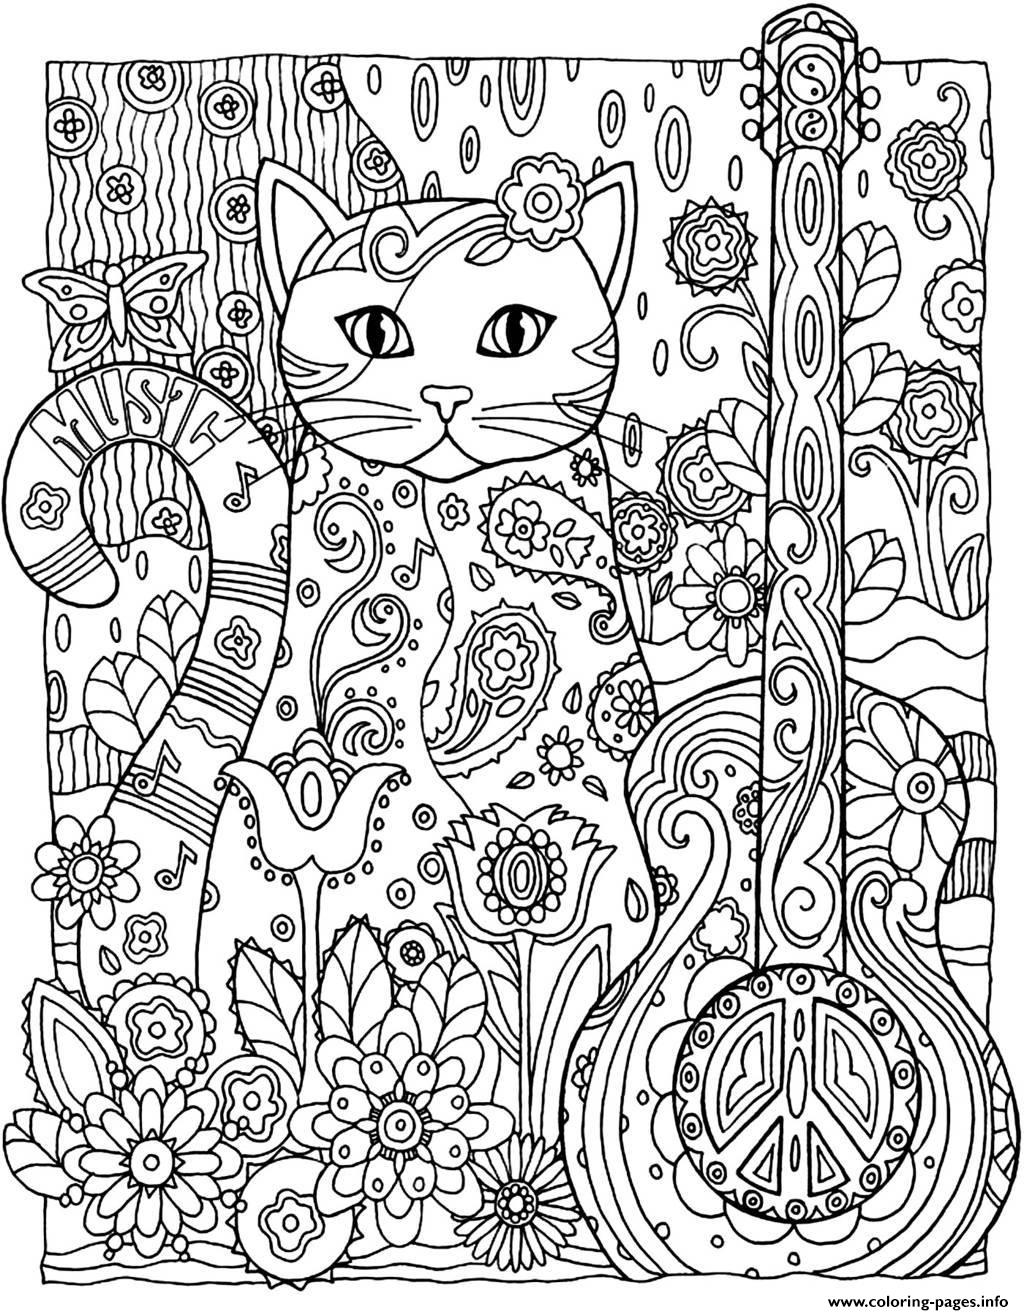 adult cat guitar coloring pages - Guitar Coloring Pages